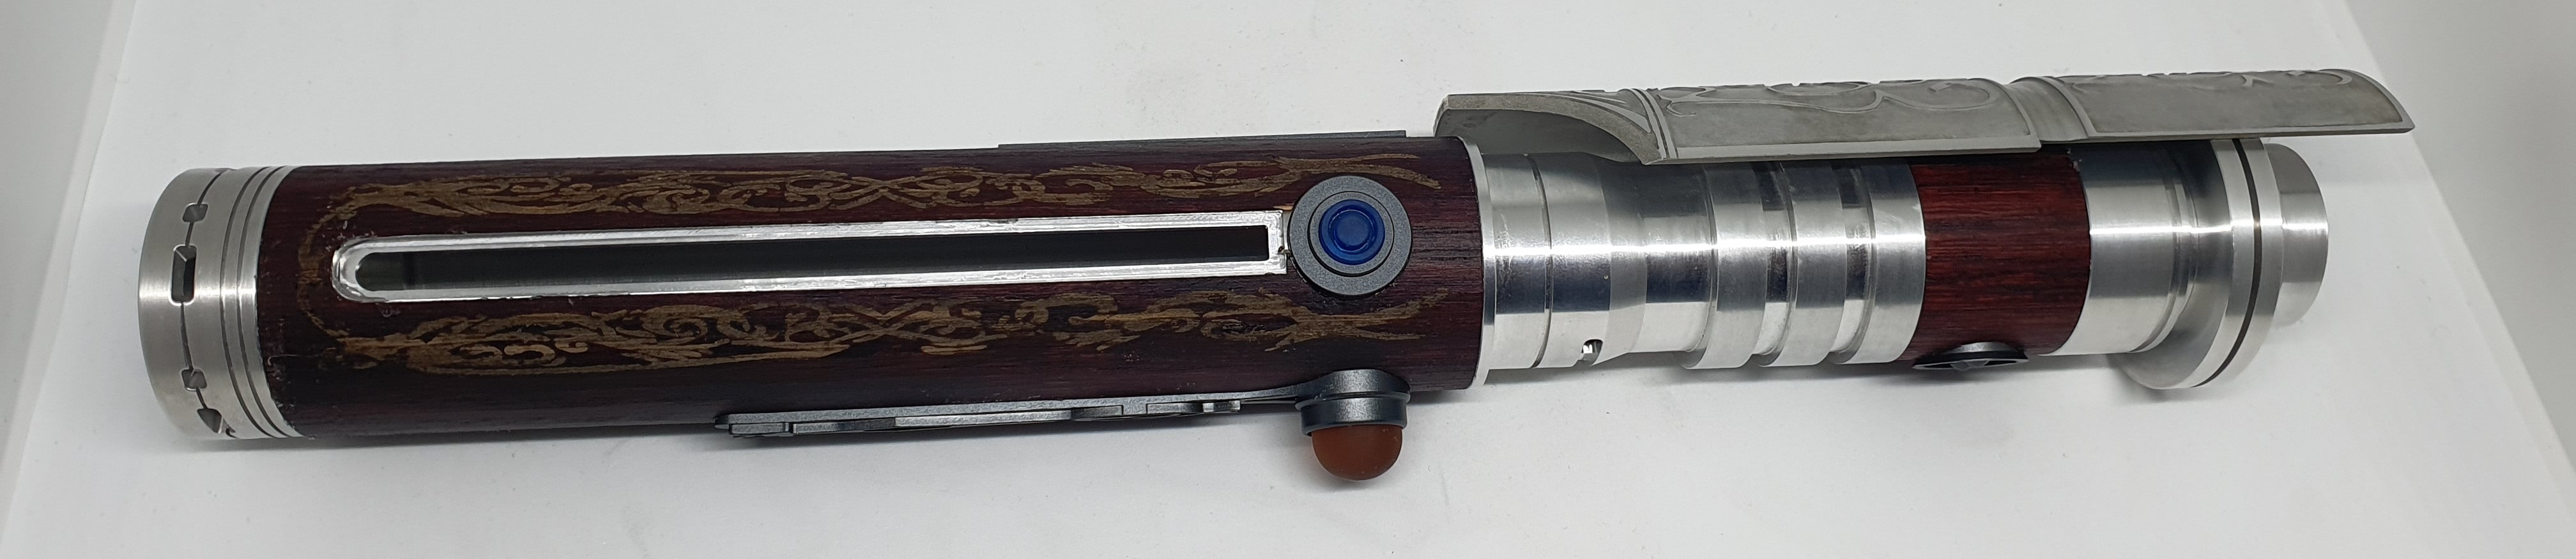 Orgus Din Lightsaber Hilt Odin S Wrath 2020 Run By Jawas Junkyard Rpf Costume And Prop Maker Community Gungi is a young wookie from the kids television series star wars the clone wars, i have looked at the internet for the past 2 days trying to find a mod that lets me get gungi's lightsaber but i have had no. orgus din lightsaber hilt odin s wrath